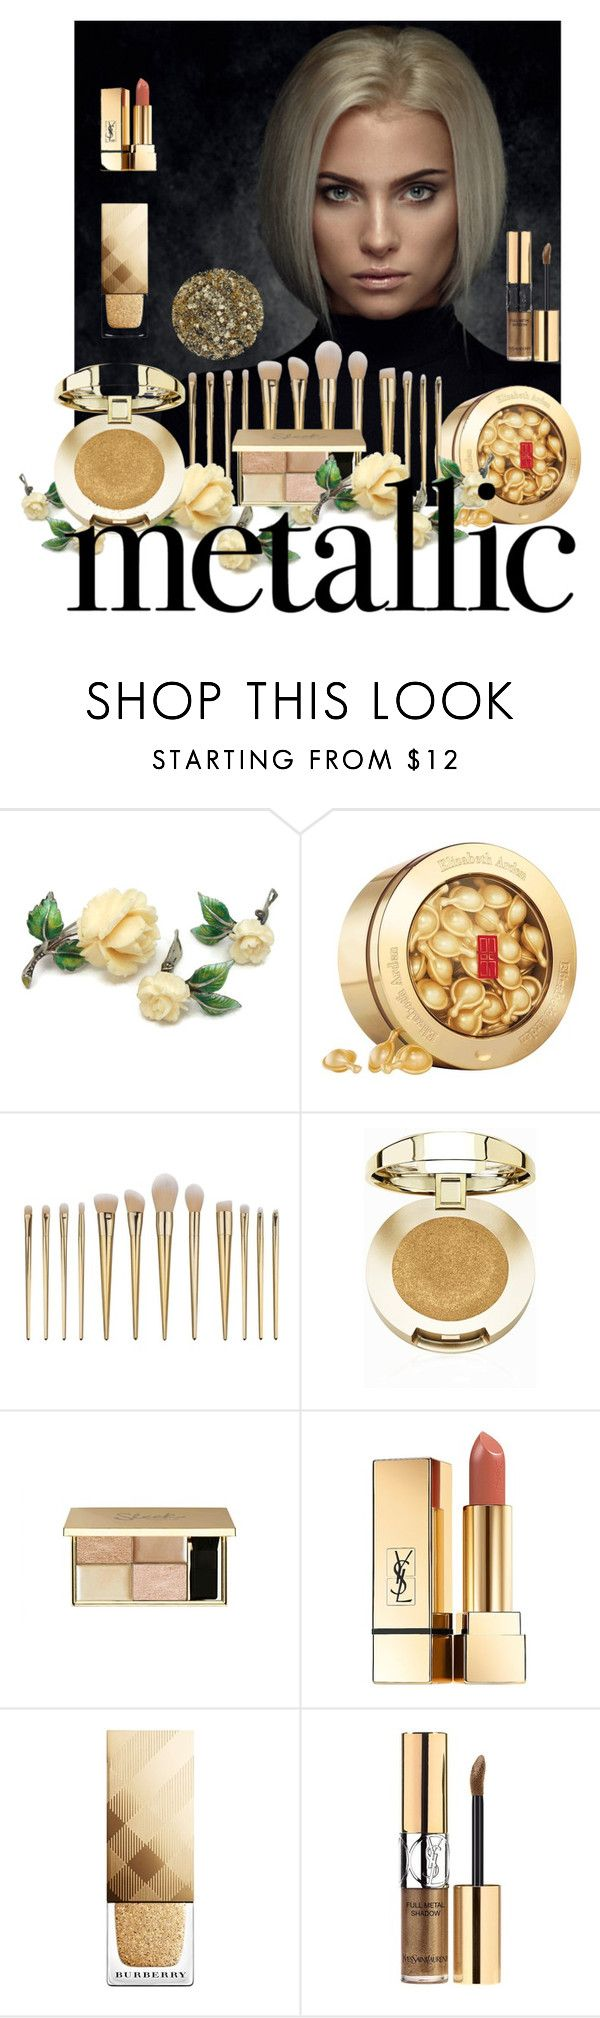 """Metallic Makeup"" by west-815 ❤ liked on Polyvore featuring beauty, Elizabeth Arden, Milani, Yves Saint Laurent, Burberry, Smith & Cult, gold, Beauty and metallicmakeup"